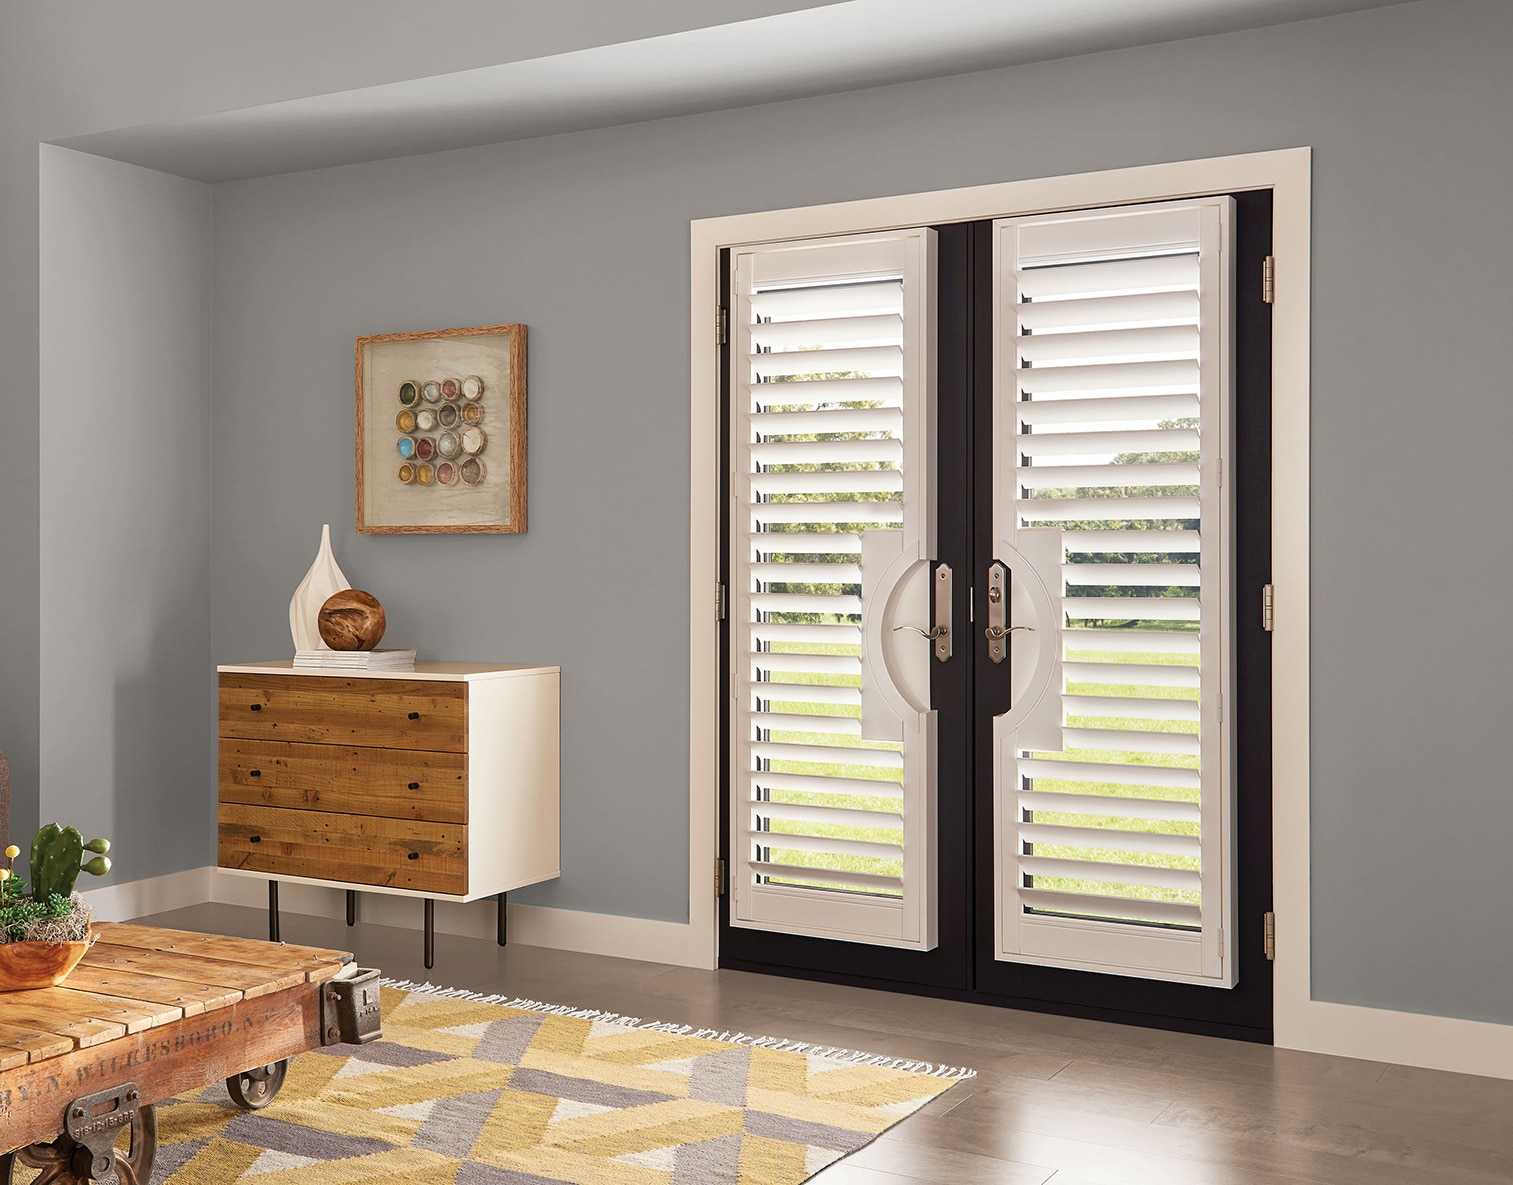 Levolor French Door Shutter Homedepot Com